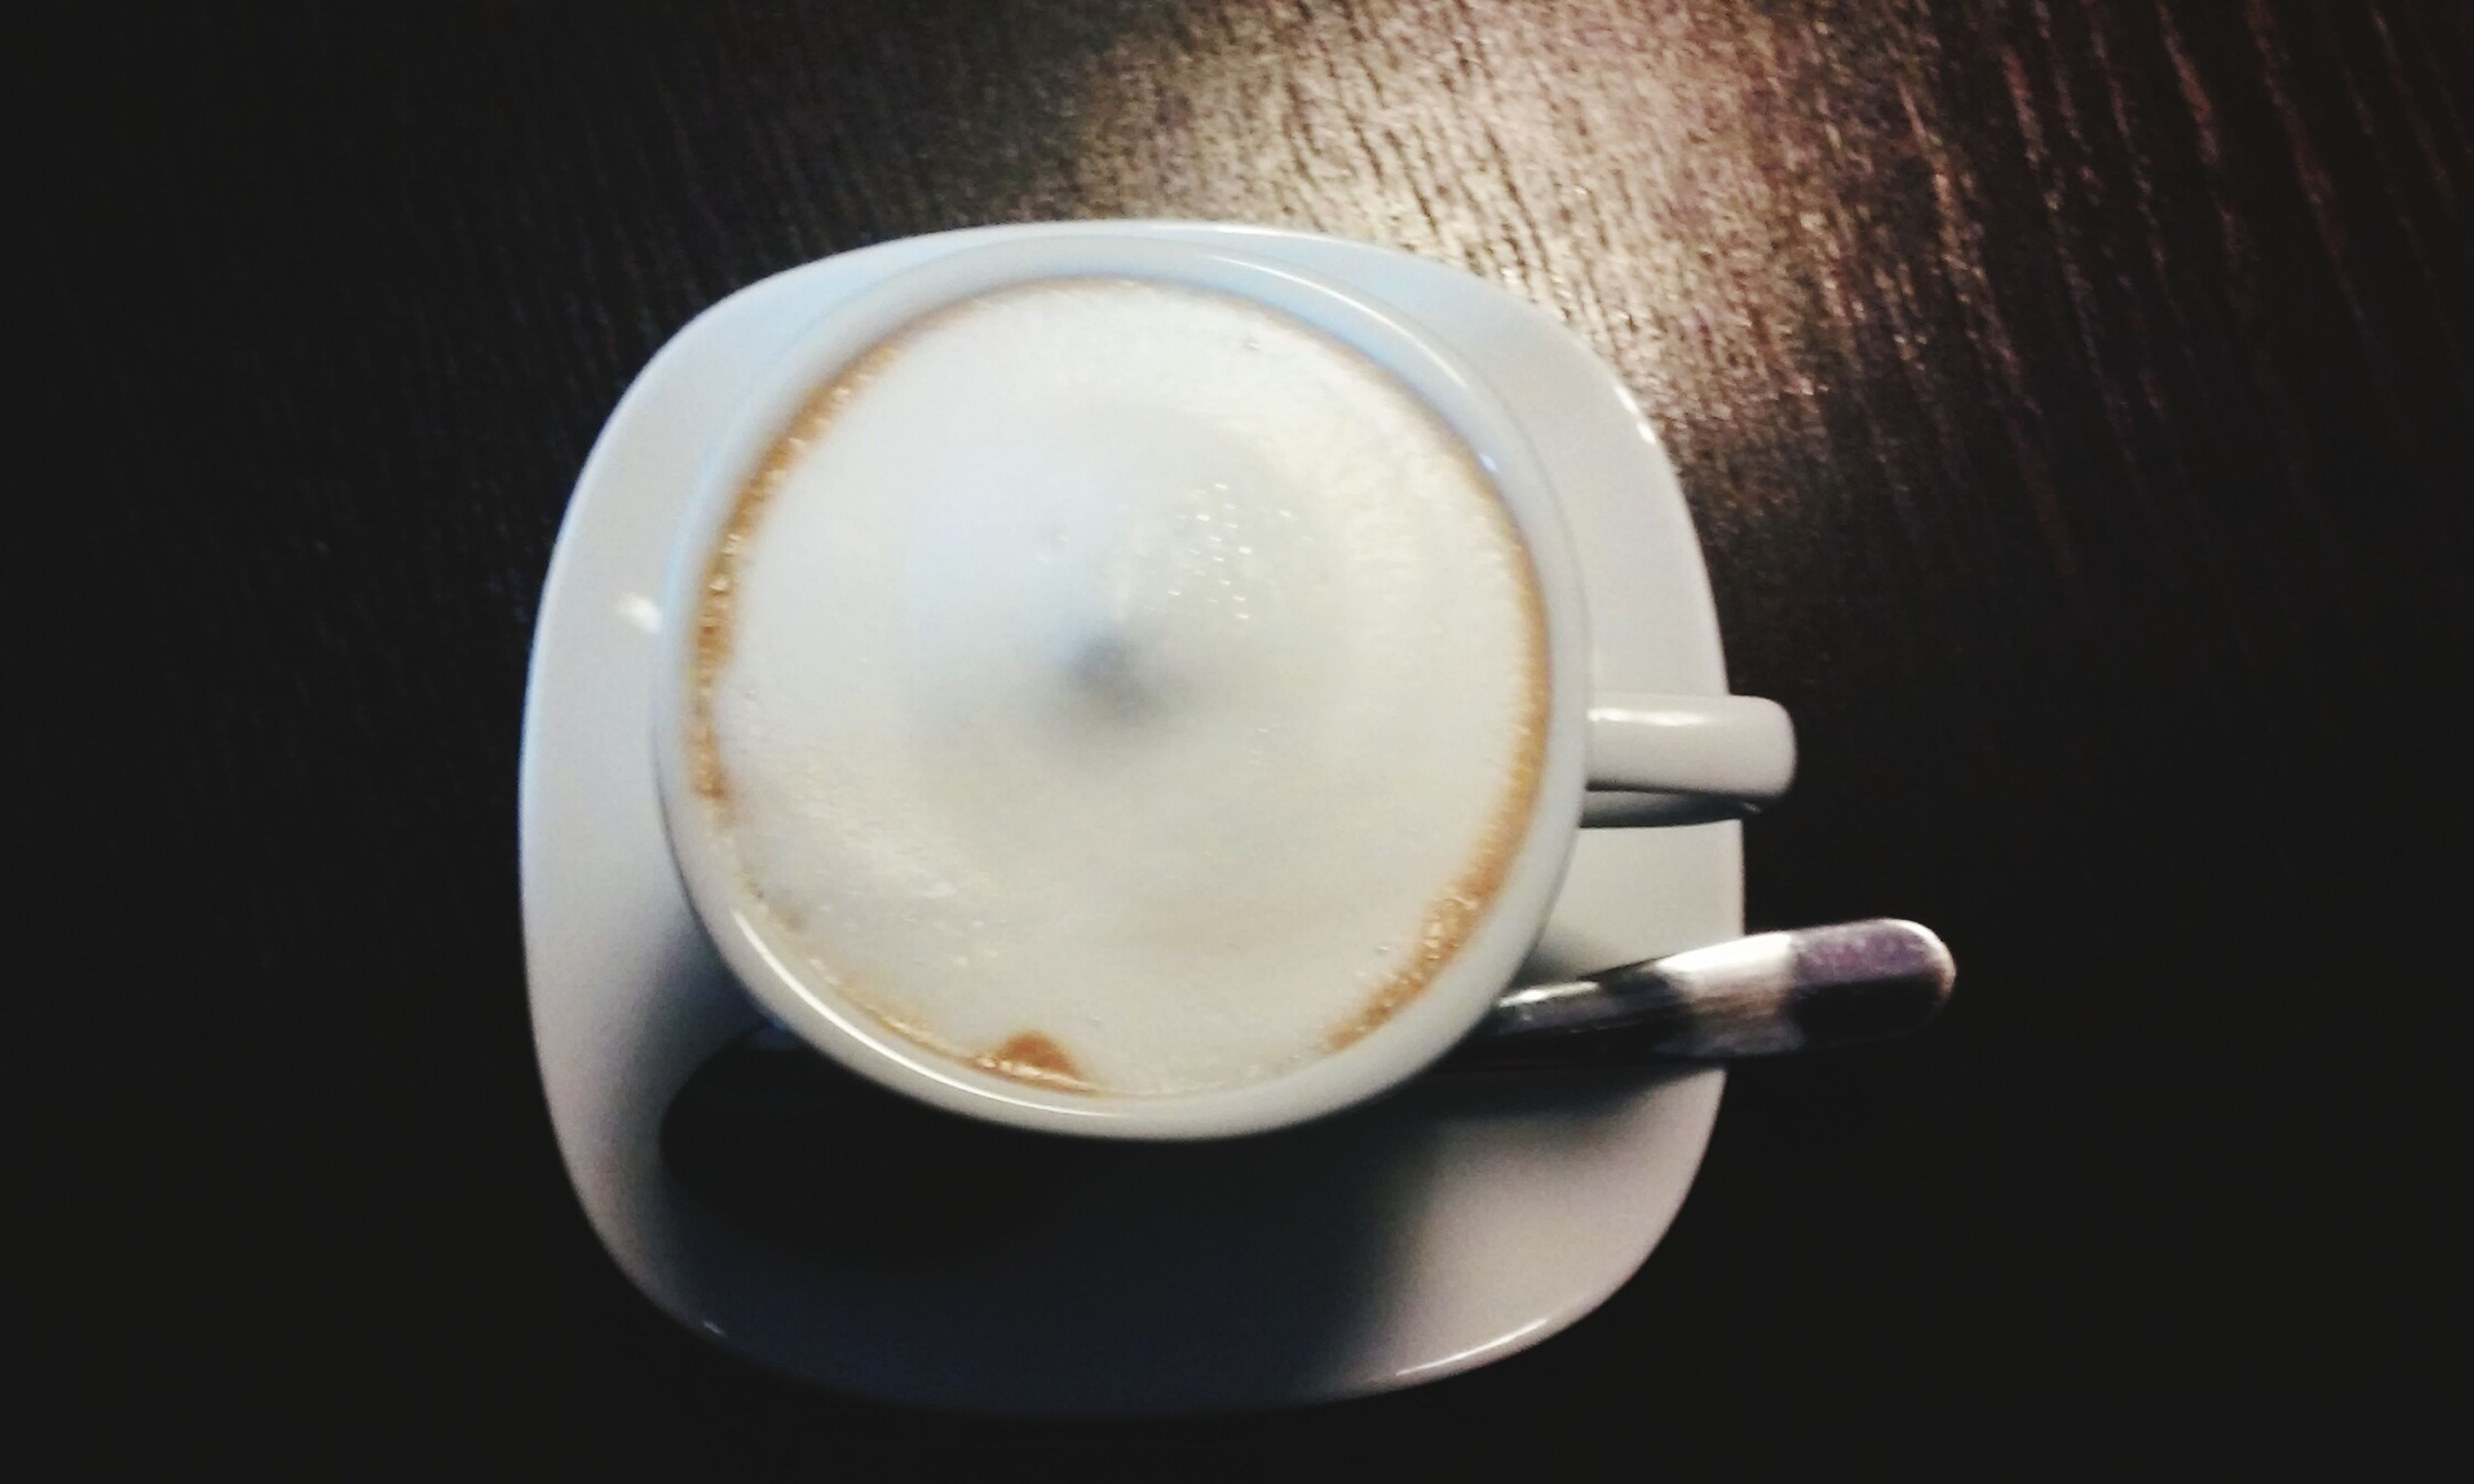 drink, food and drink, coffee cup, refreshment, coffee - drink, saucer, indoors, freshness, coffee, frothy drink, table, cup, still life, spoon, cappuccino, beverage, close-up, directly above, healthy eating, high angle view